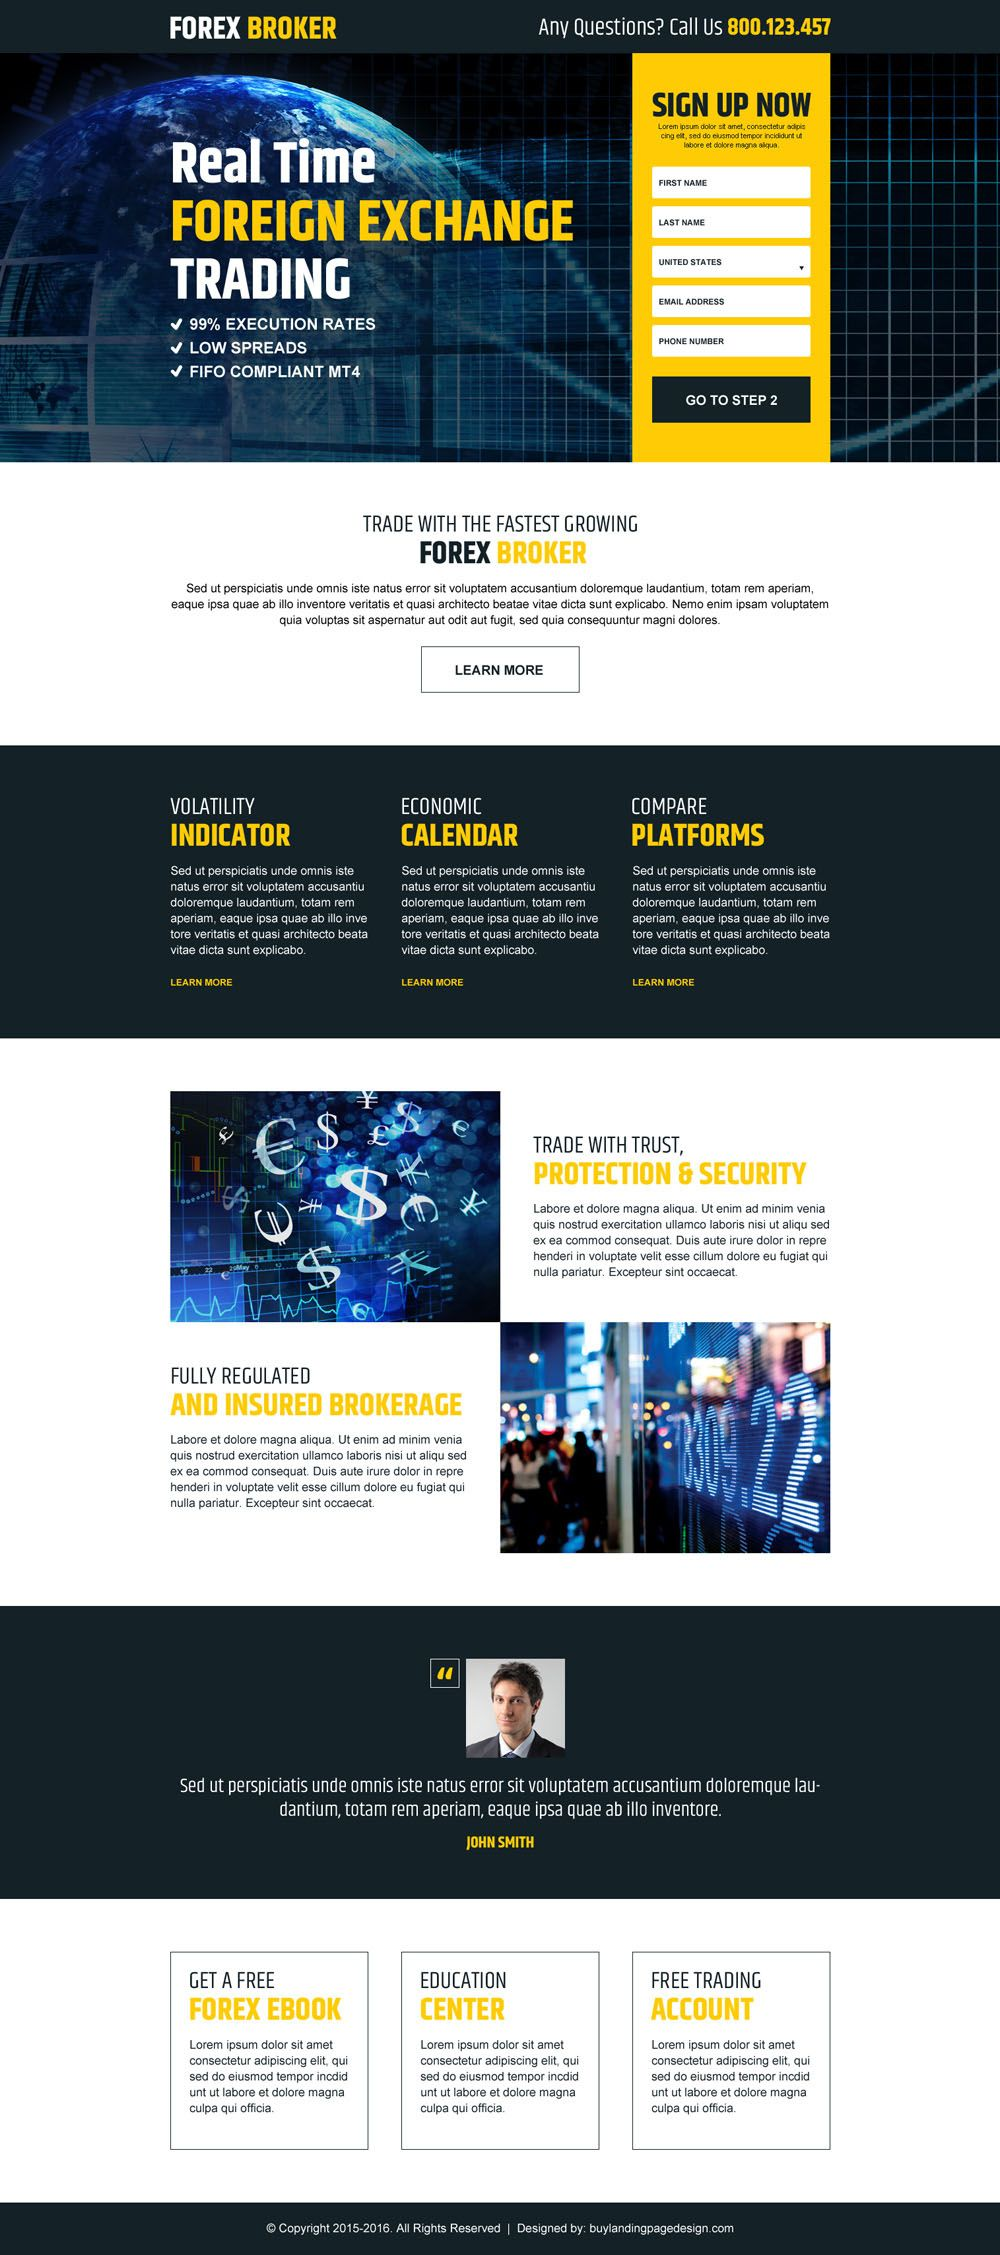 Real Time Foreign Exchange Trading Sign Up Lead Capture Landing Page